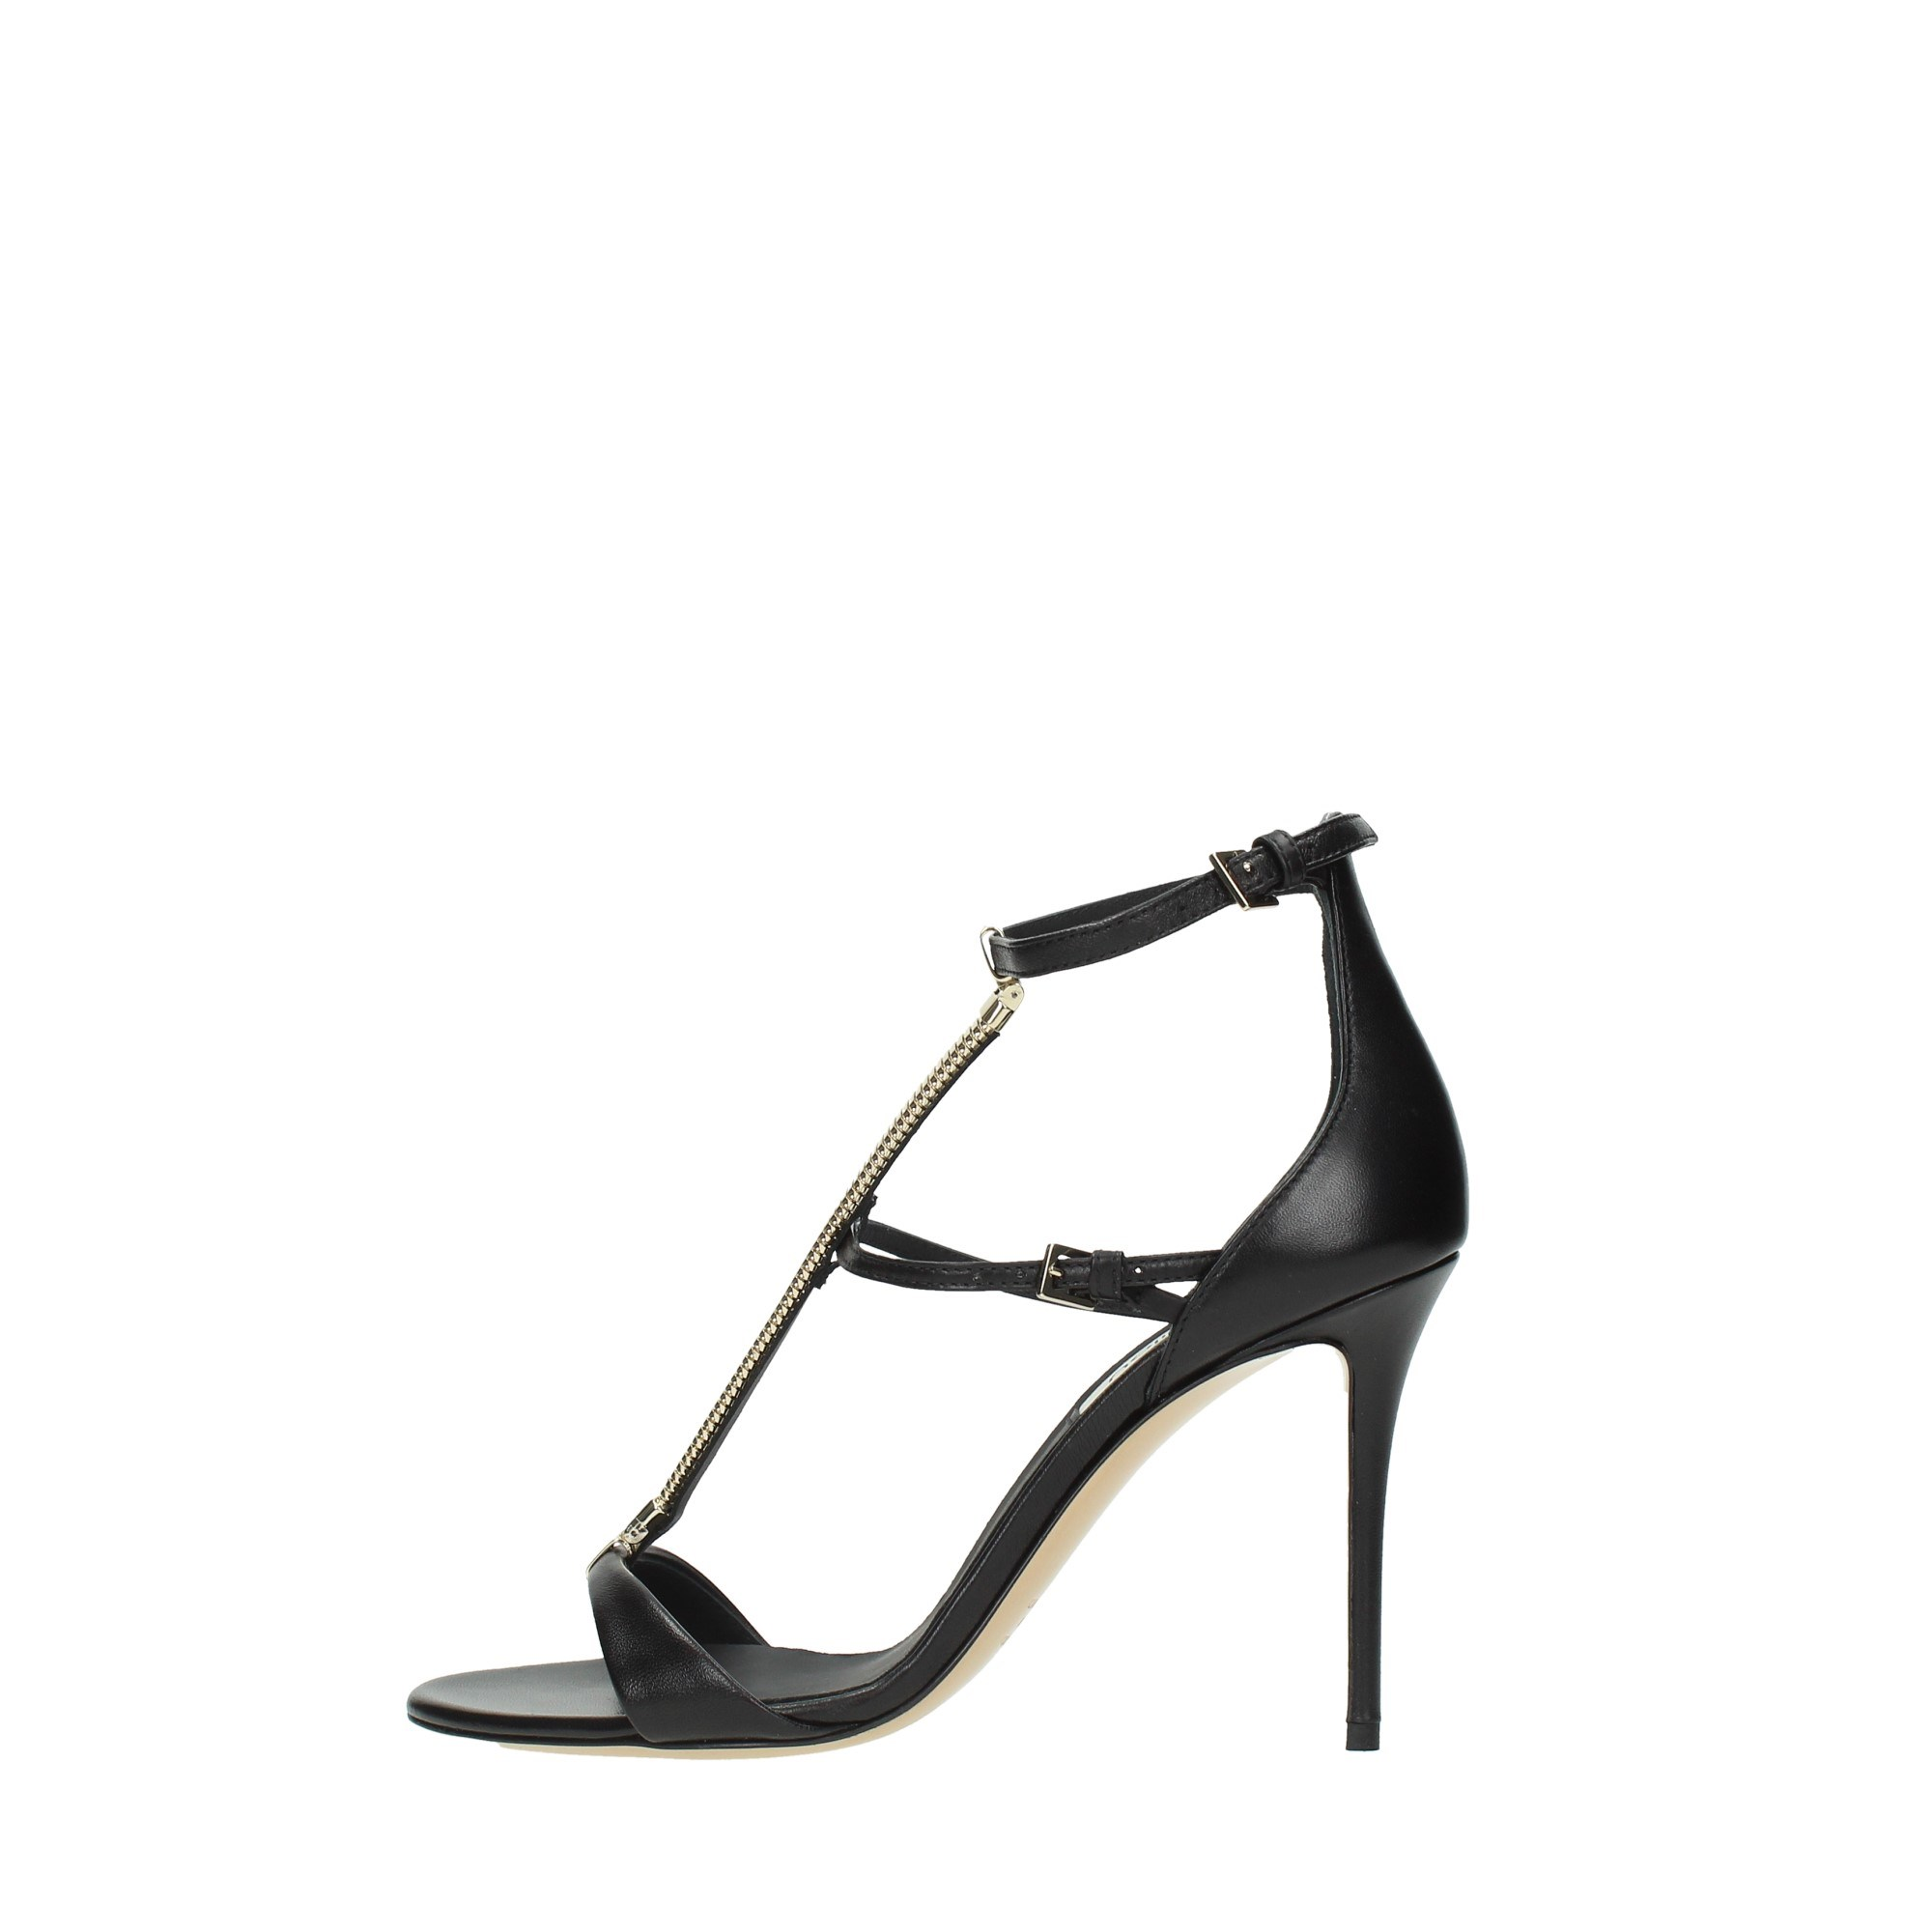 Ninalilou Shoes Women Sandals Black 301002